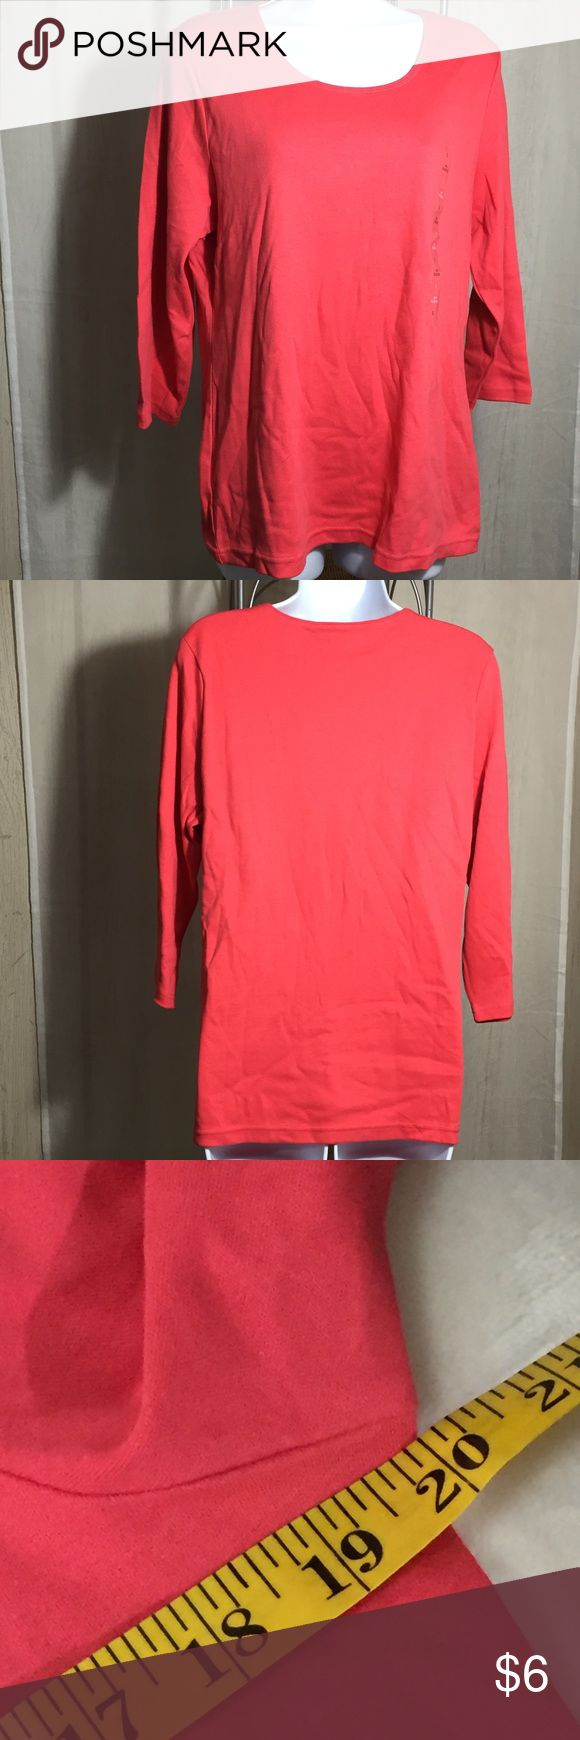 Karen Scott Basic Tee Size L-Bundle Item 3/4 length sleeves  Straight hem Color is Crushed Coral NWT See materials and care on pictures. See measurements on pictures. Karen Scott Tops